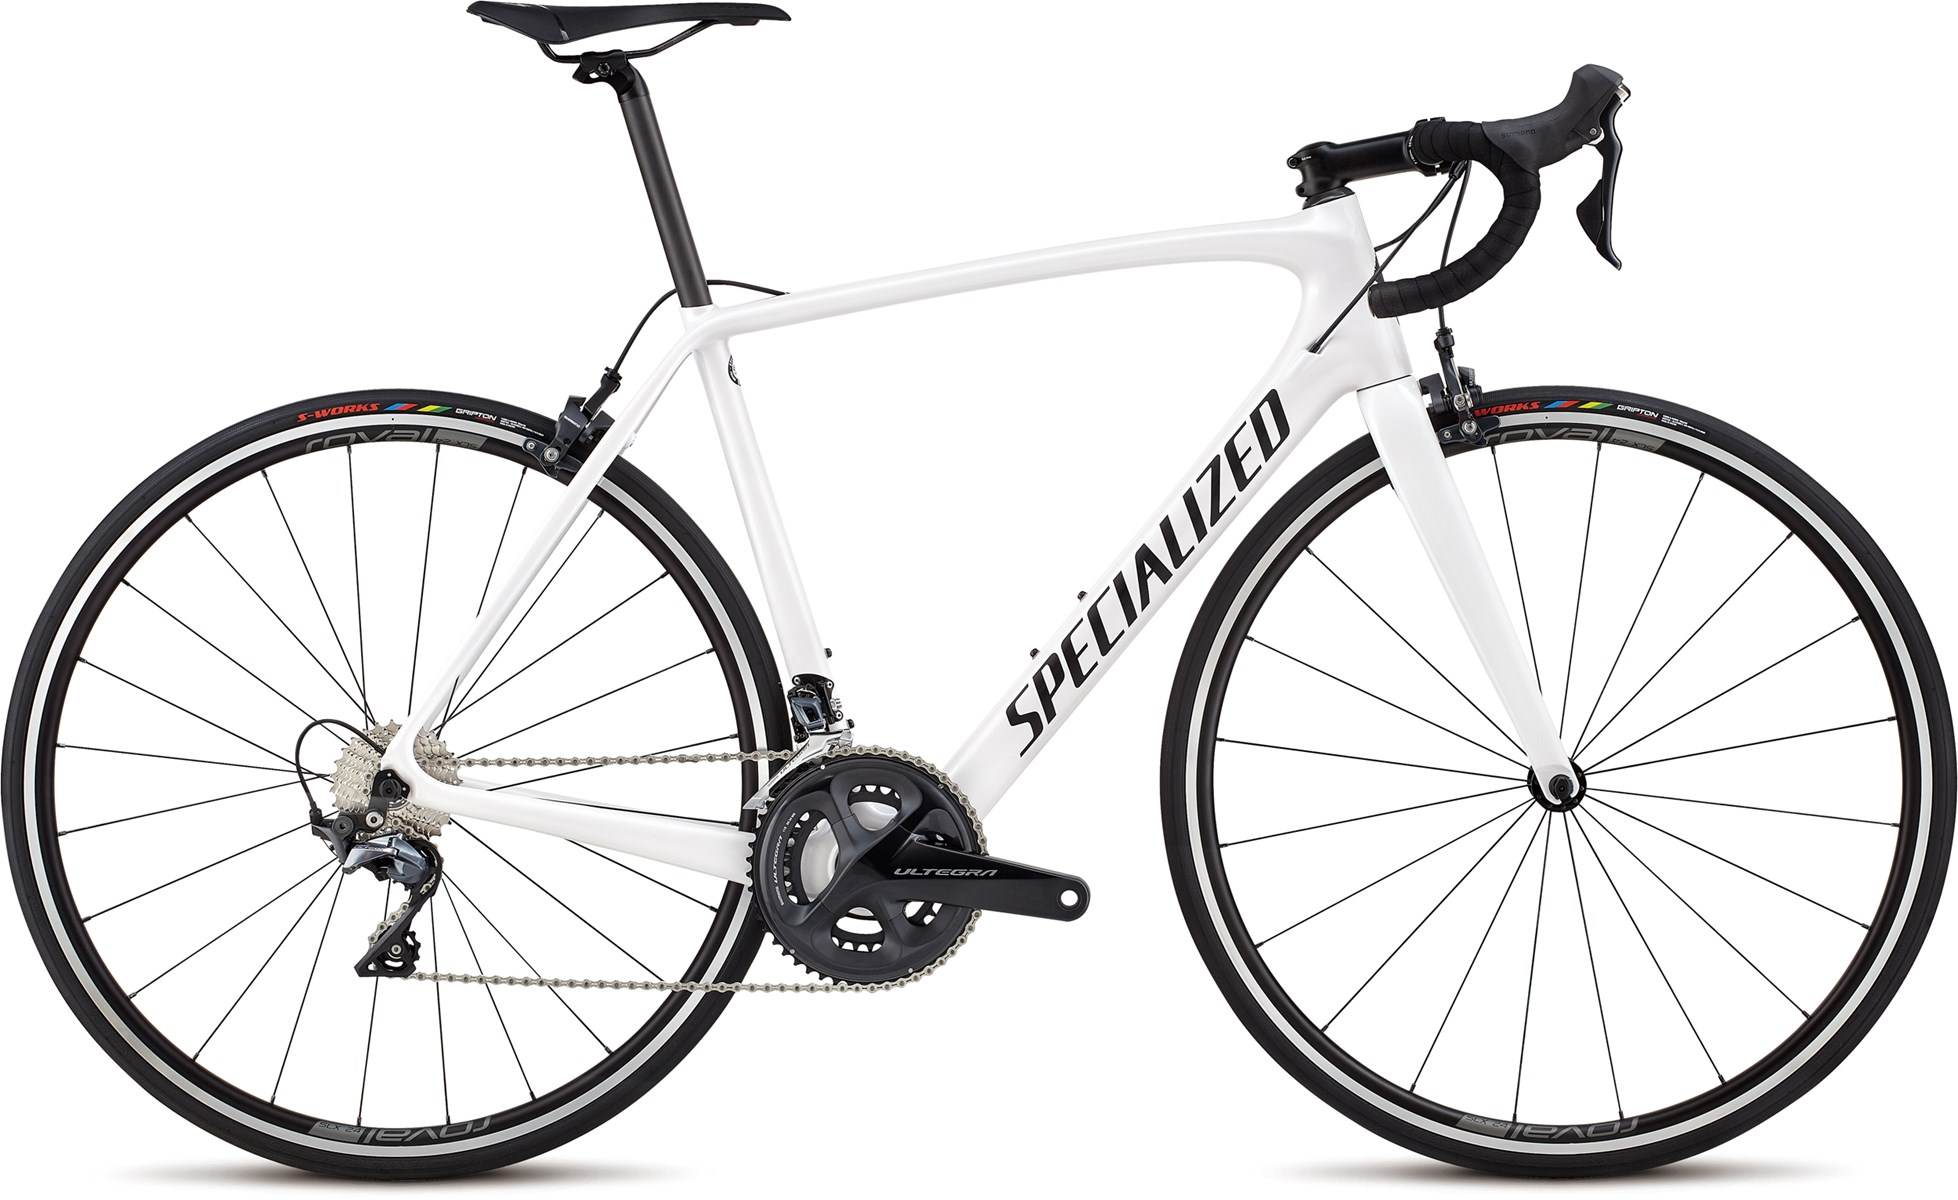 480a14085cb Specialized Tarmac SL5 Comp Carbon Road Bike. 0 (Be the first to add a  review!)